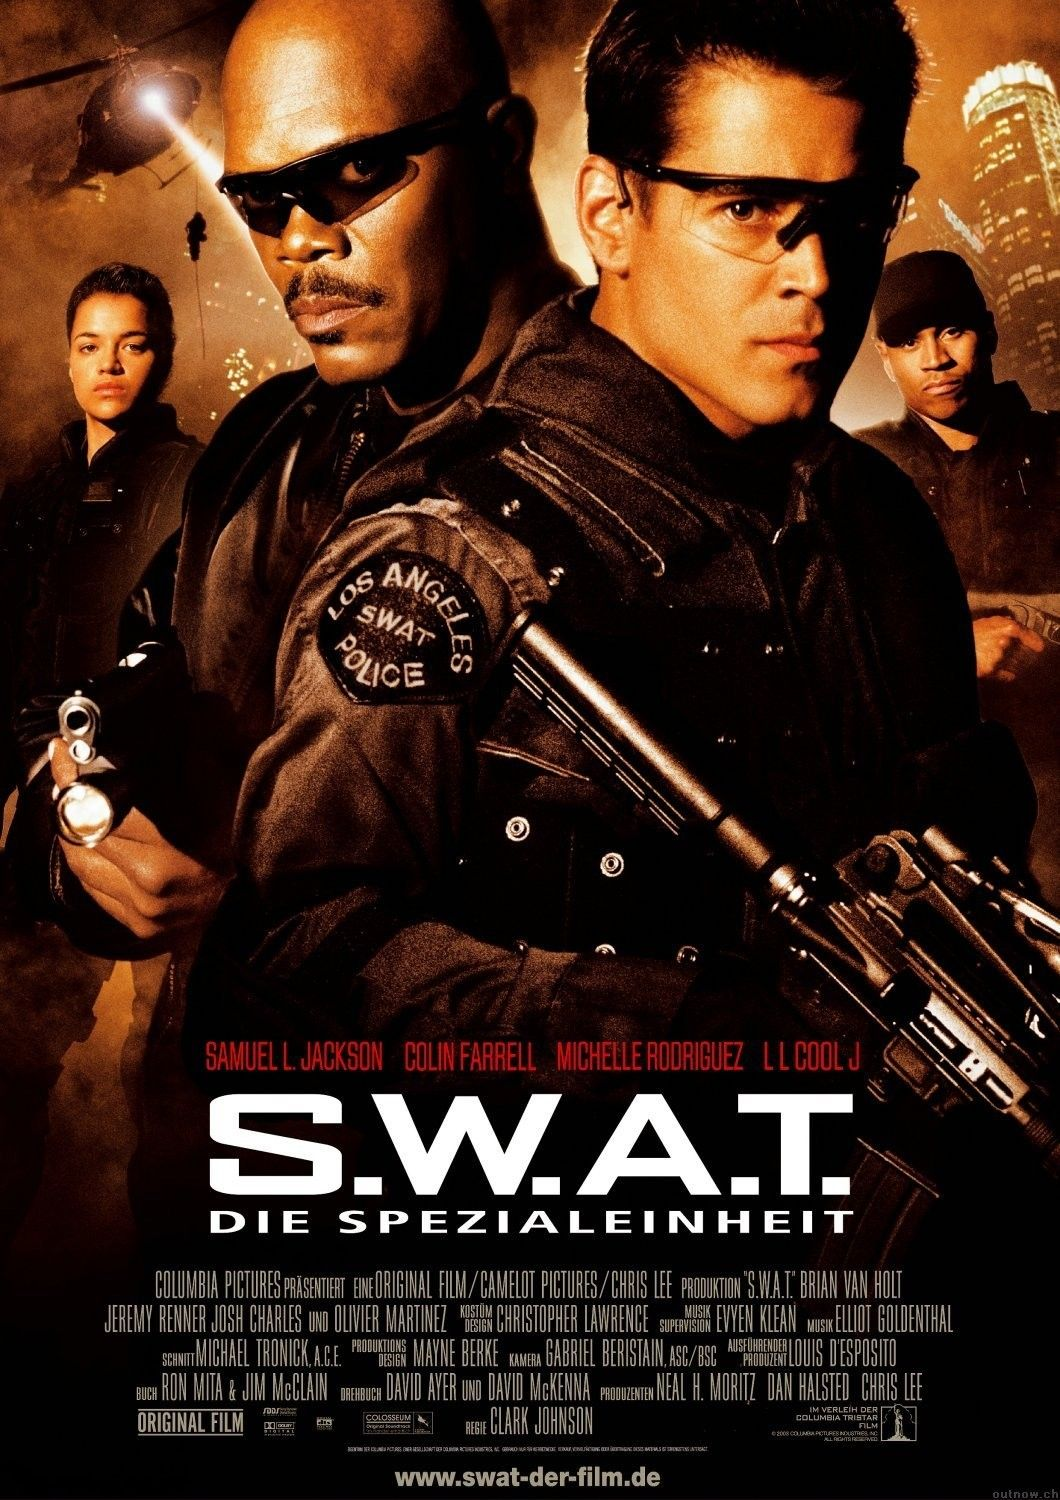 S W A T 2003 Full Movies Movies Online Full Movies Online Free